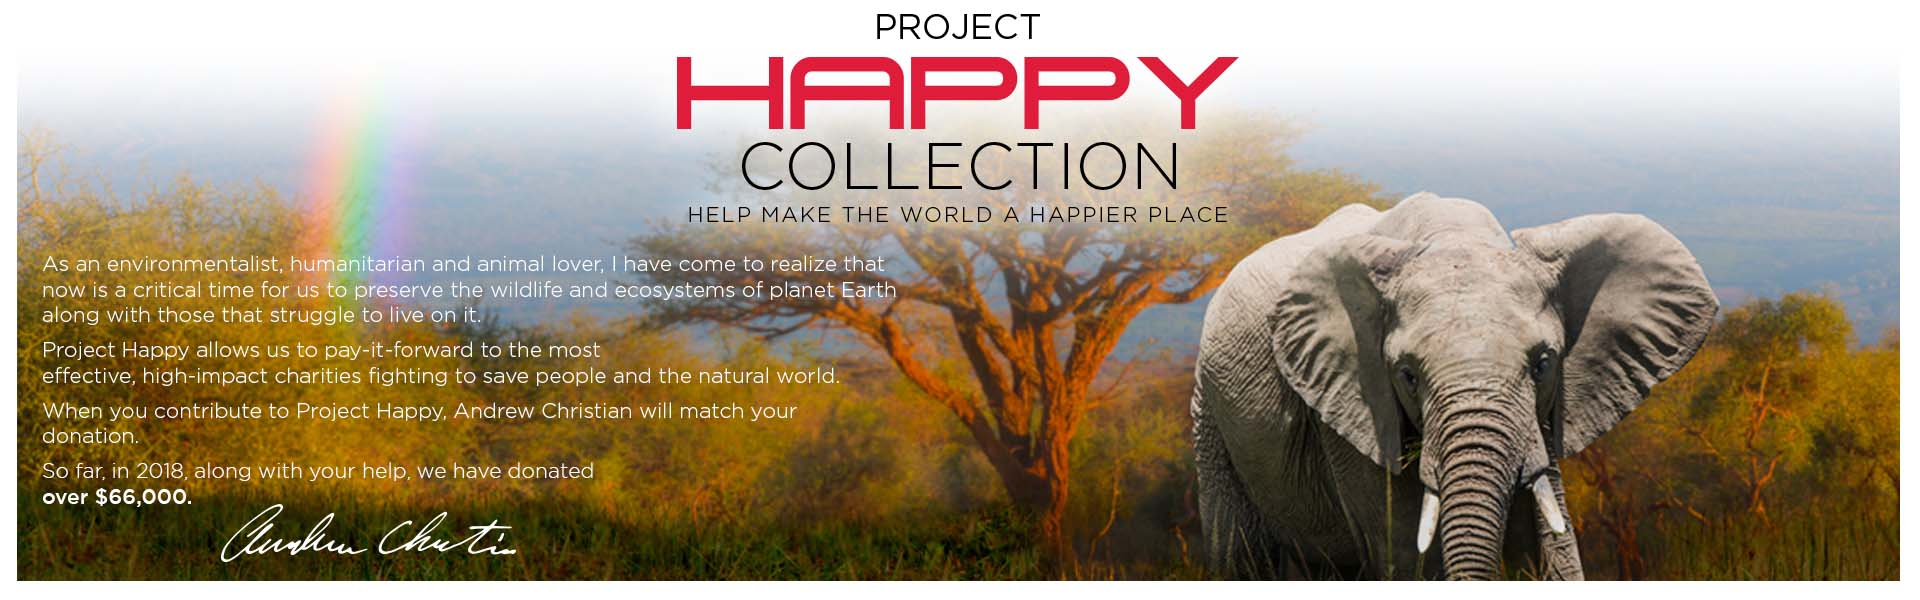 PROJECT HAPPY COLLECTION - NEW